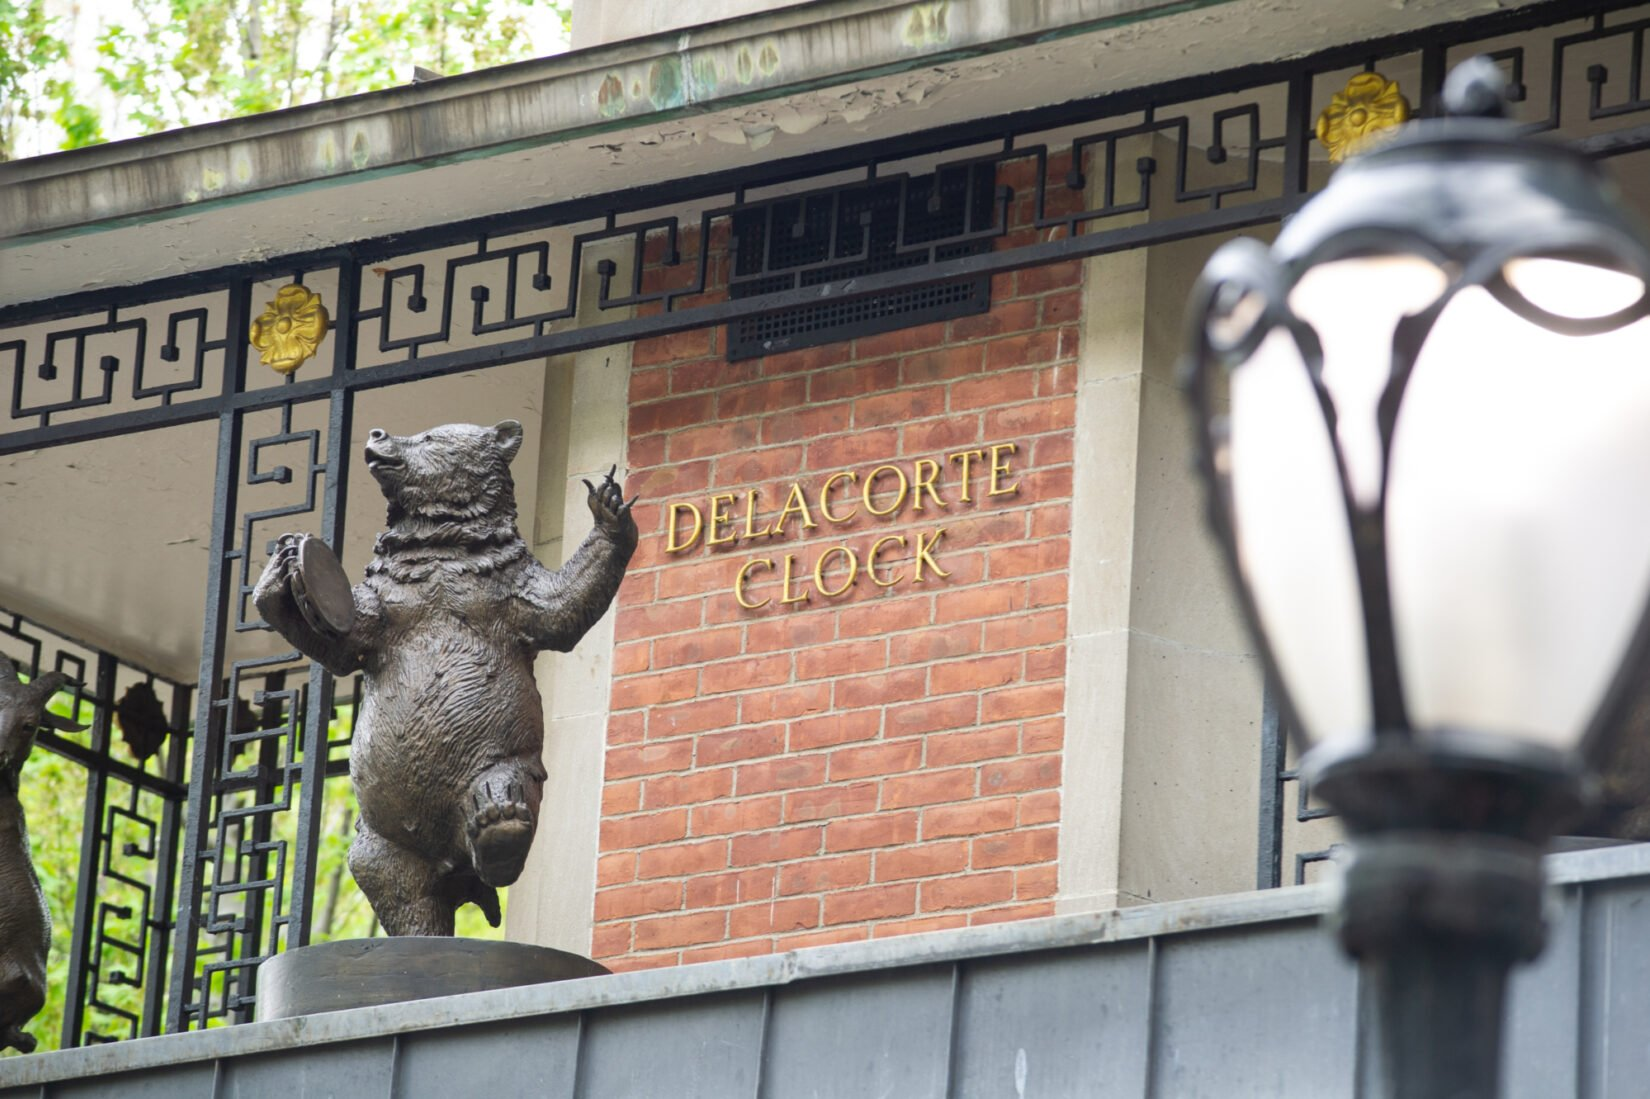 A playful statue of a bear dances around the Delacorte Clock